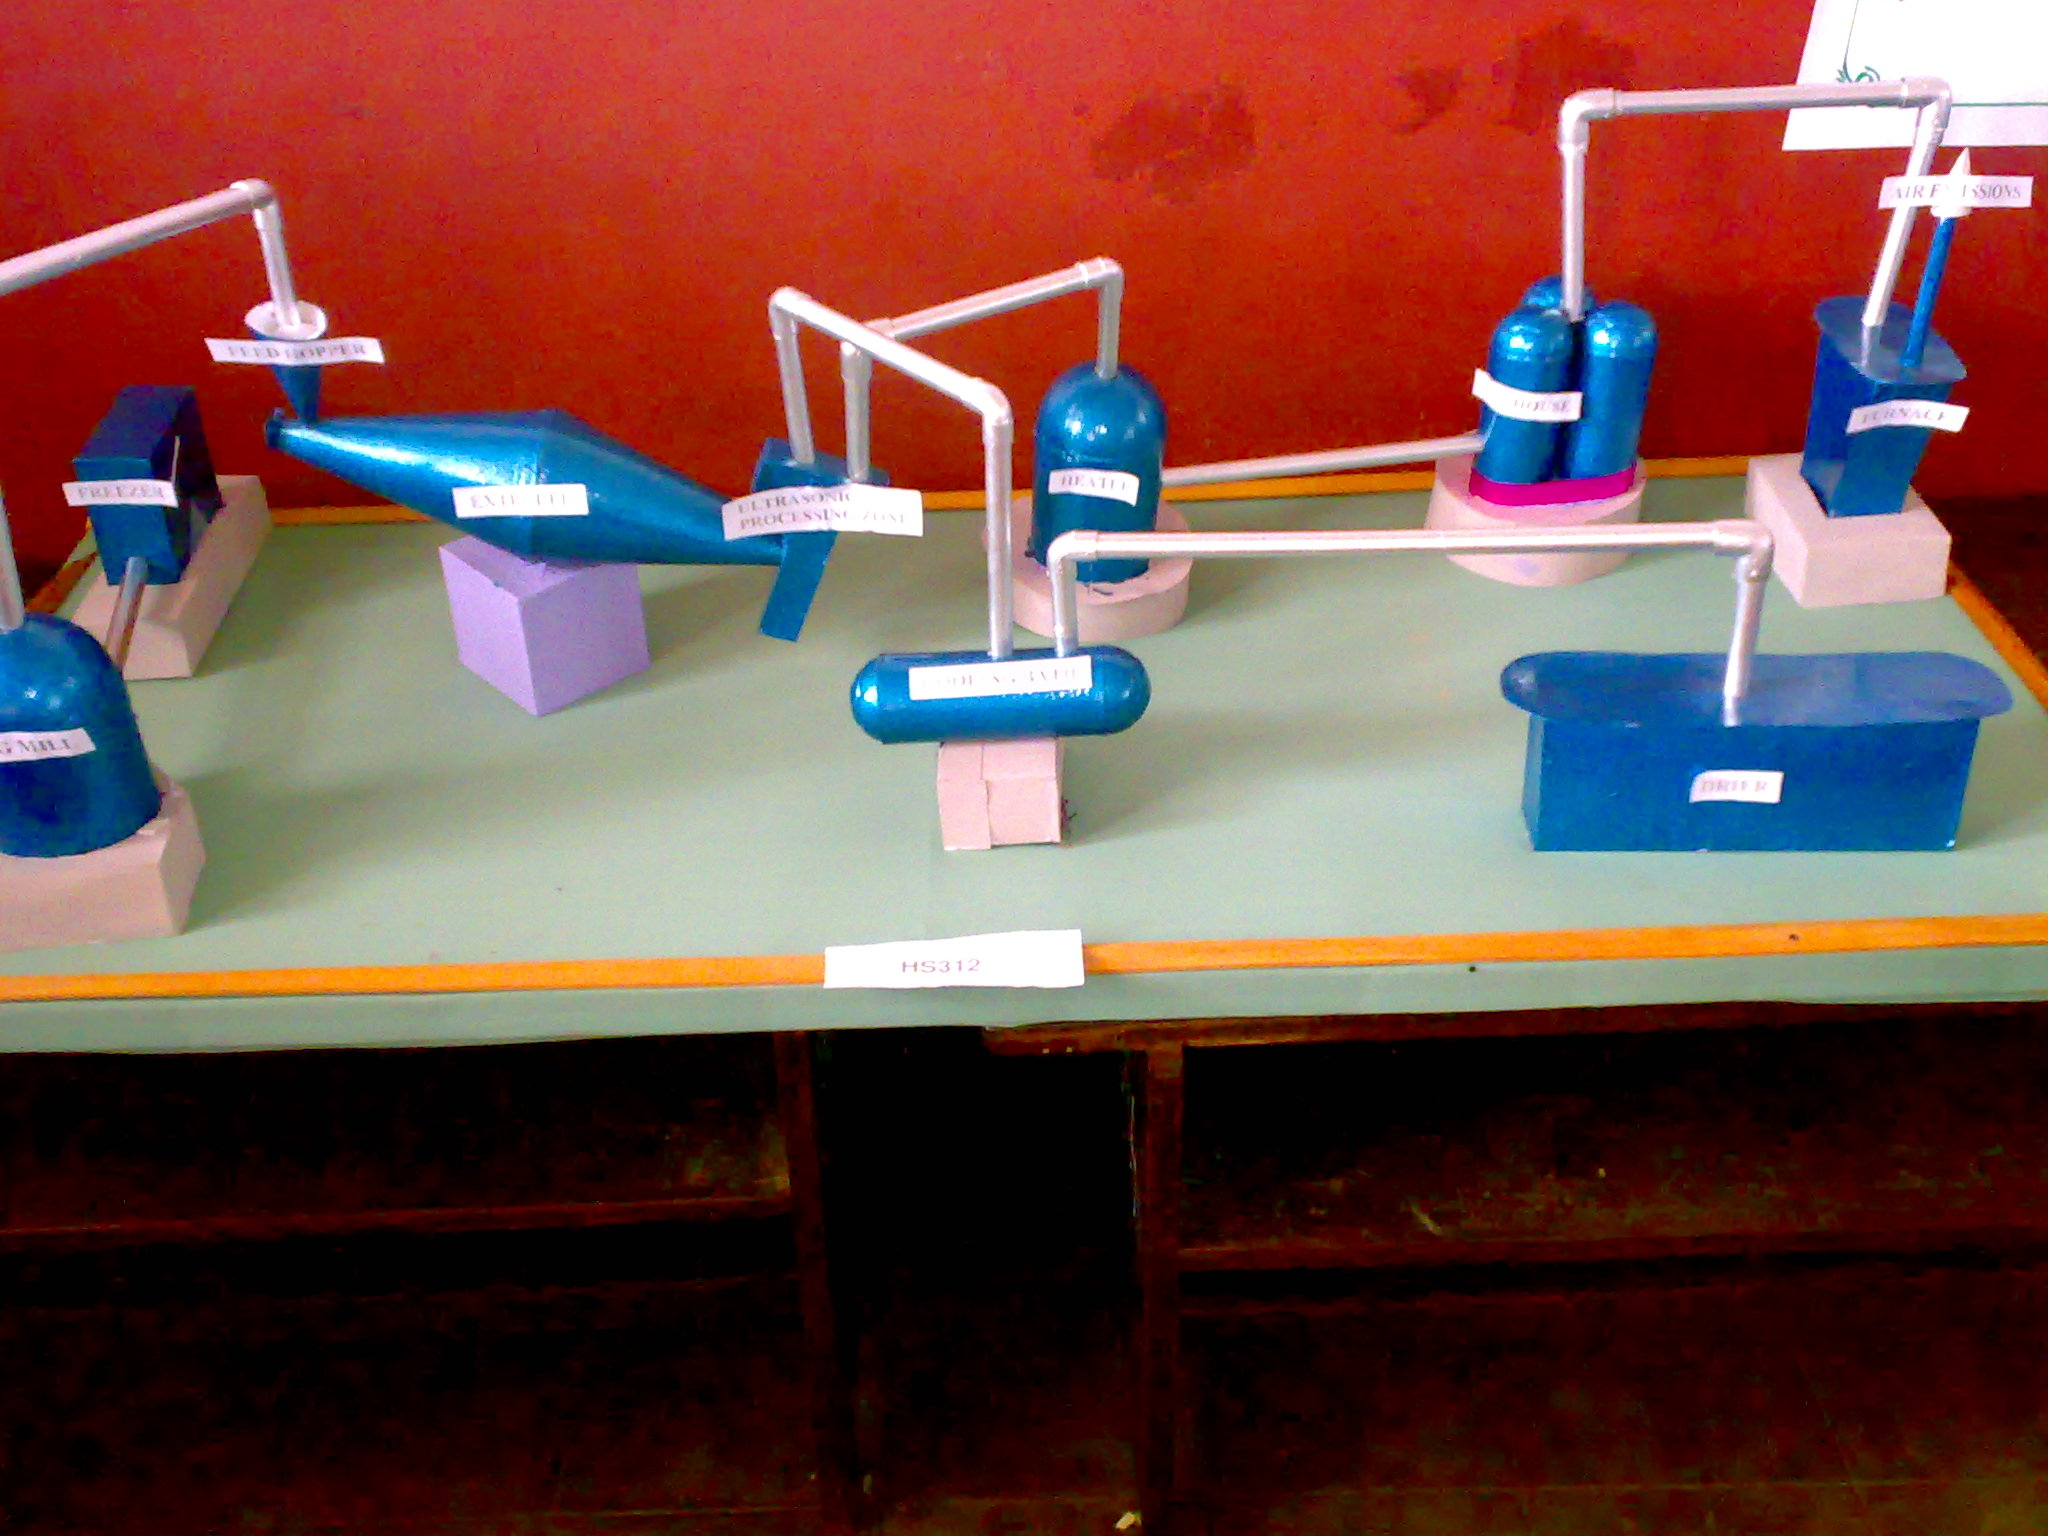 Physics Working Models Science Exhibition http://www.mihs.in/2011/11/22/alappuzha-sub-district-science-fair-2011-mihs-stall/